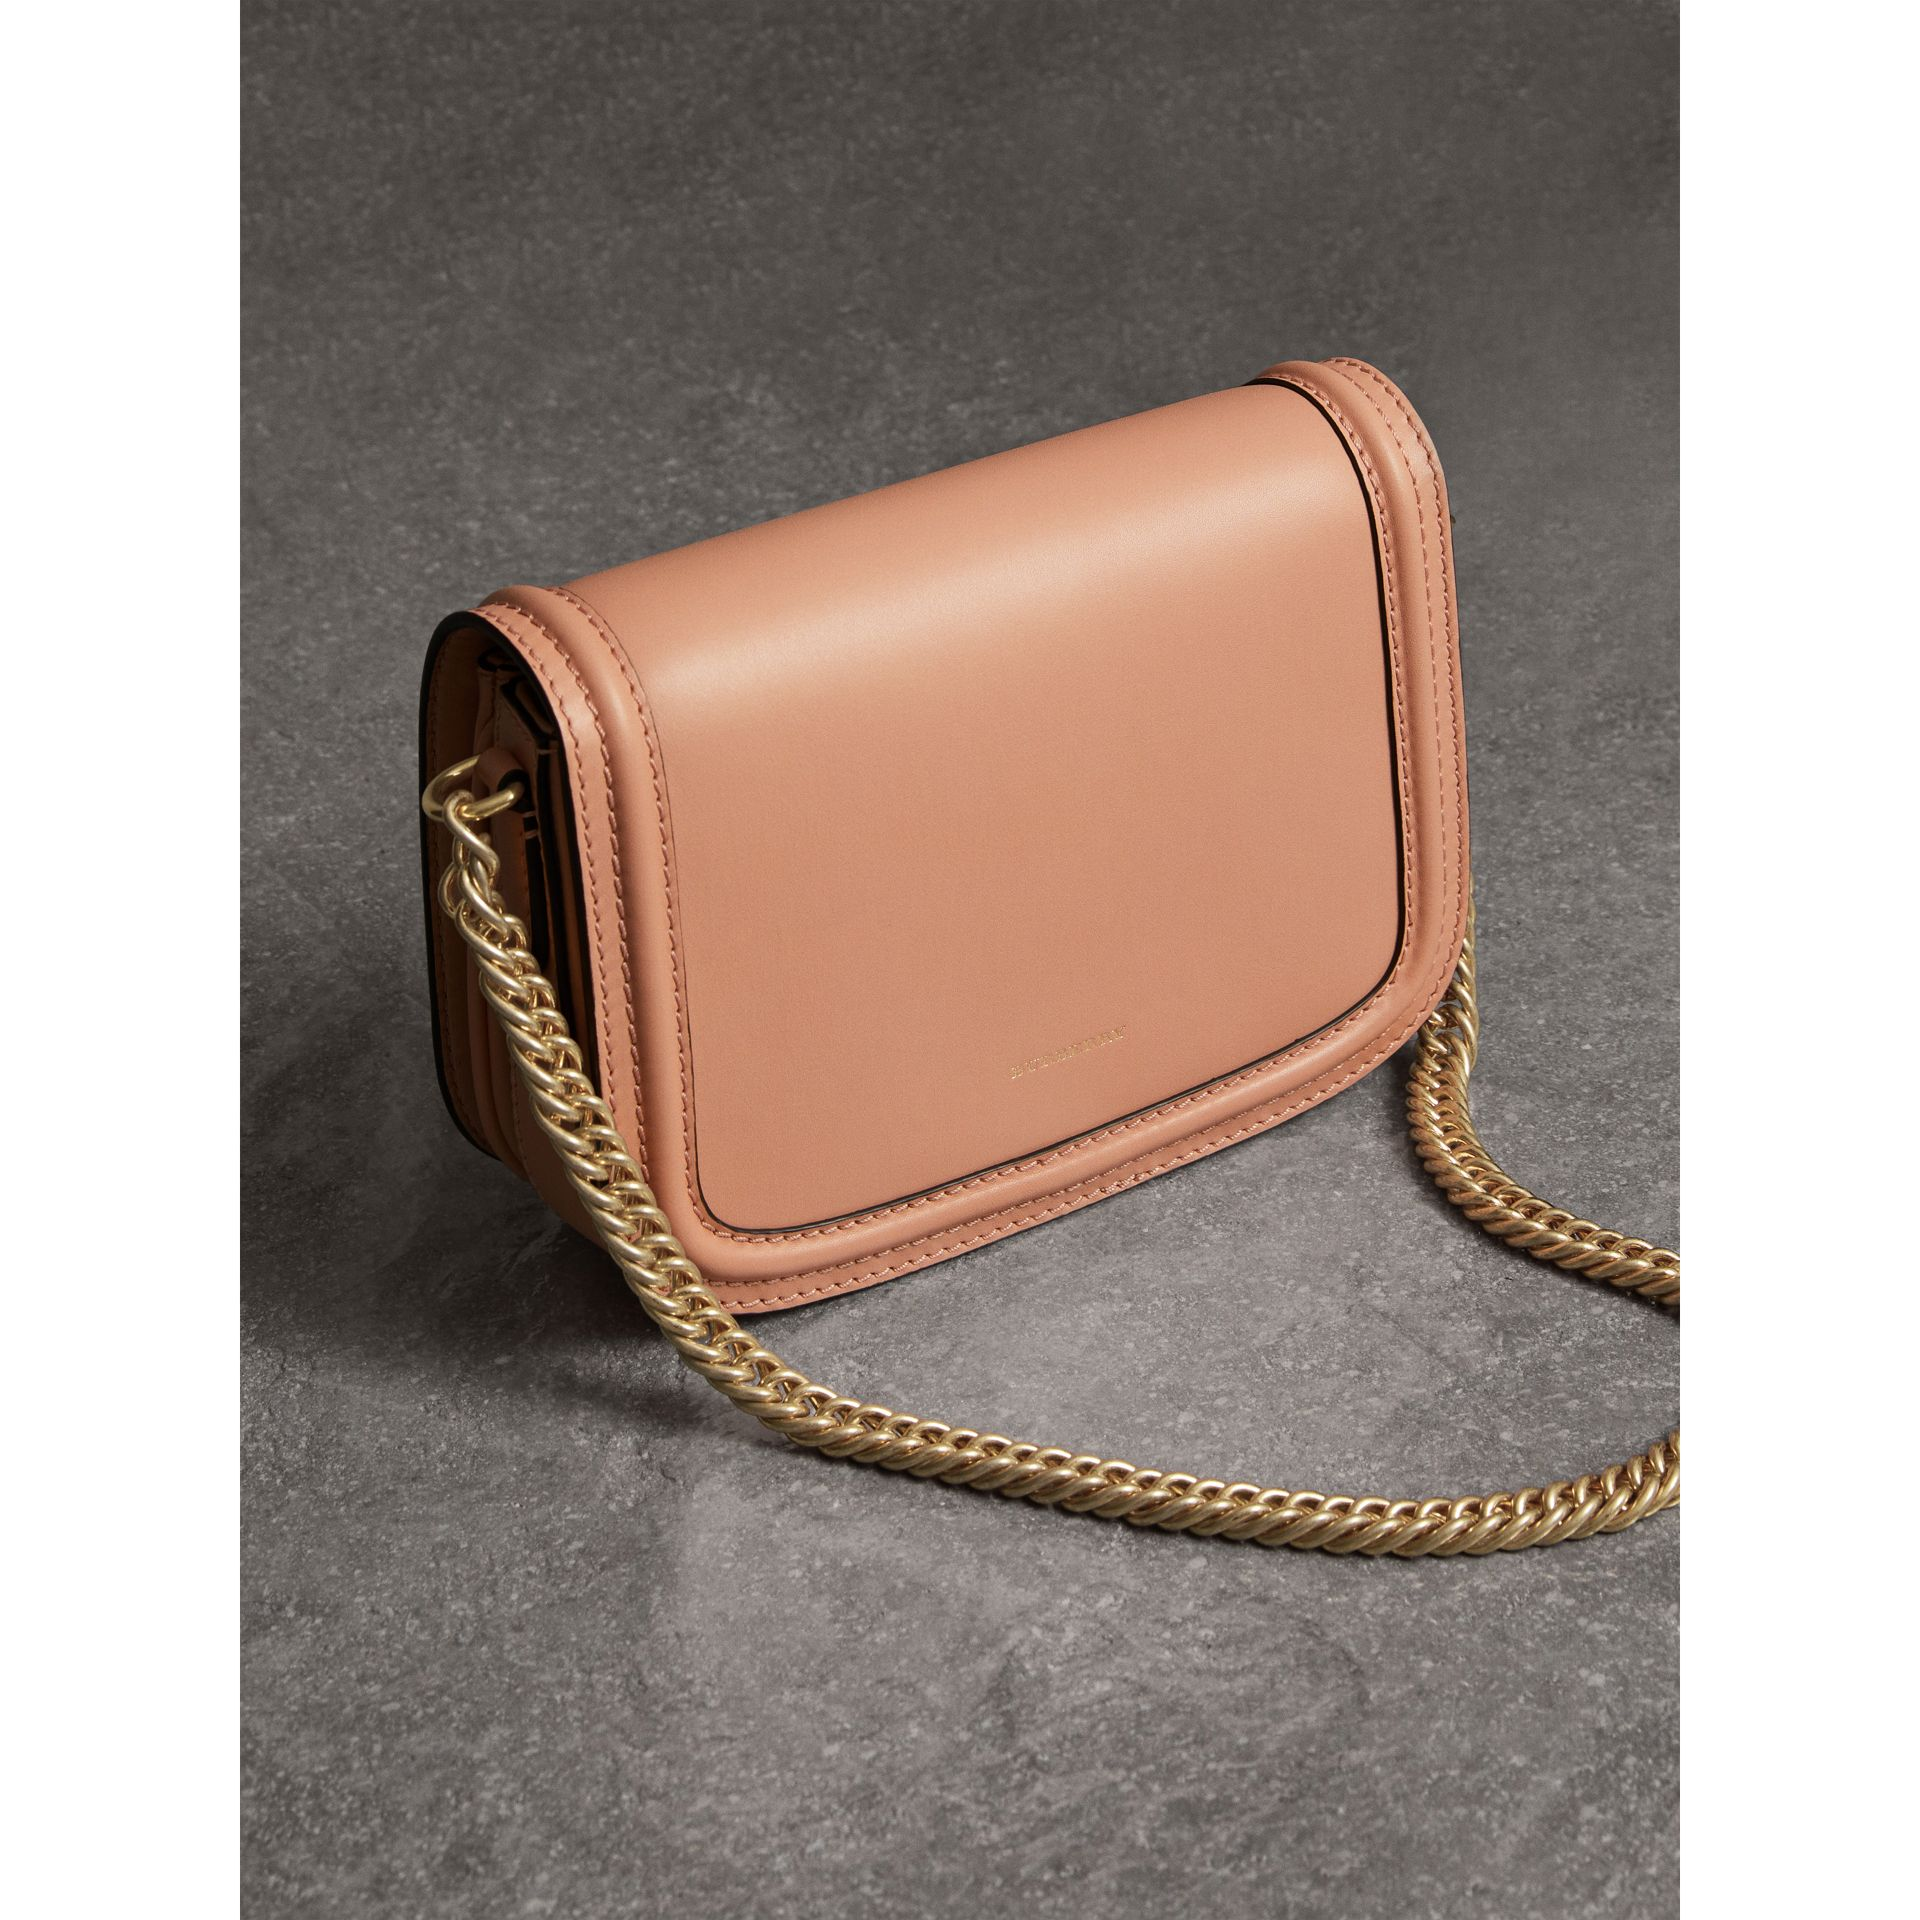 Sac The Link en cuir (Pêche) - Femme | Burberry Canada - photo de la galerie 3